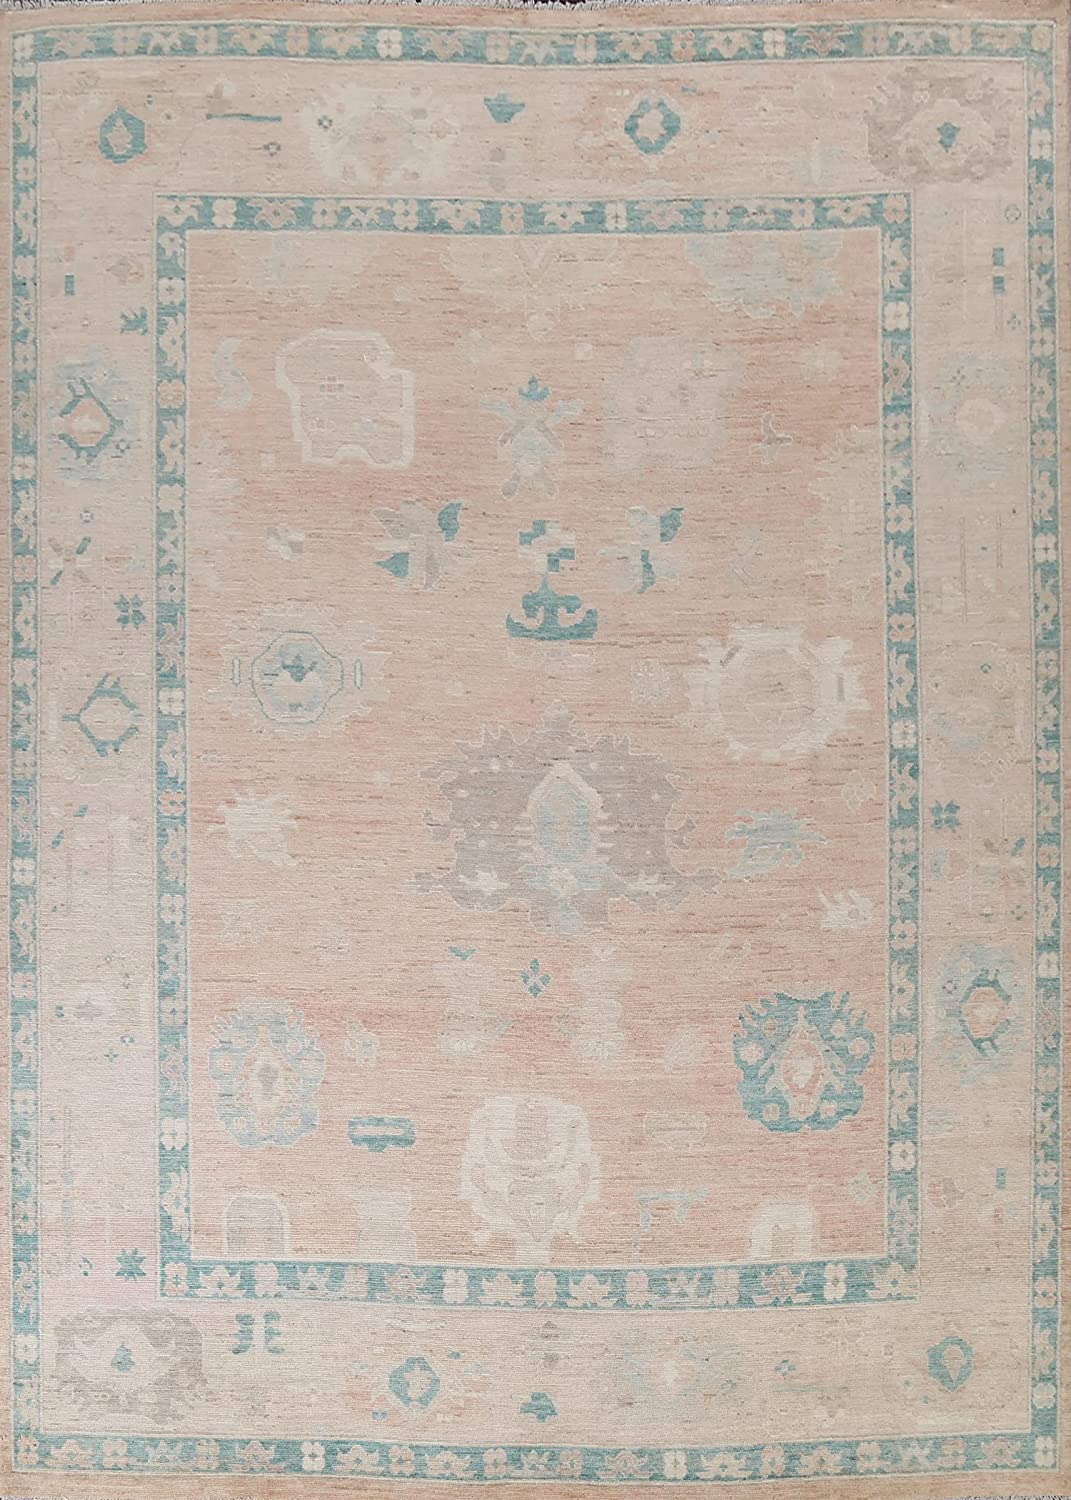 Peach Abstract Geometric Vegetable Dye Oushak Rug Turkish Area Max 71% Ranking TOP9 OFF W